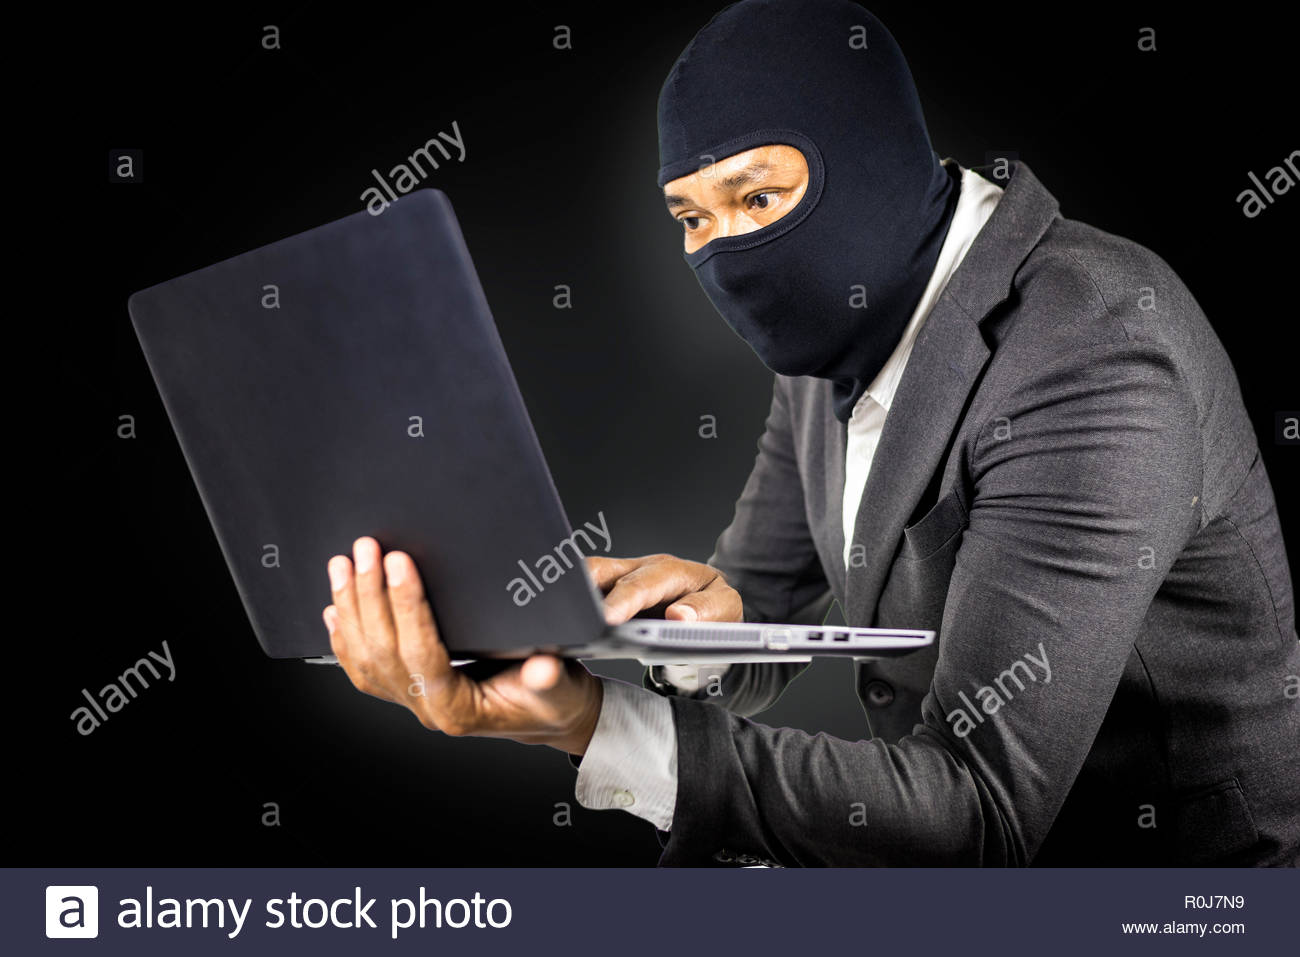 Data theft, Anonymous hacker with laptop on white isolated background, Cyber security concept - Stock Image